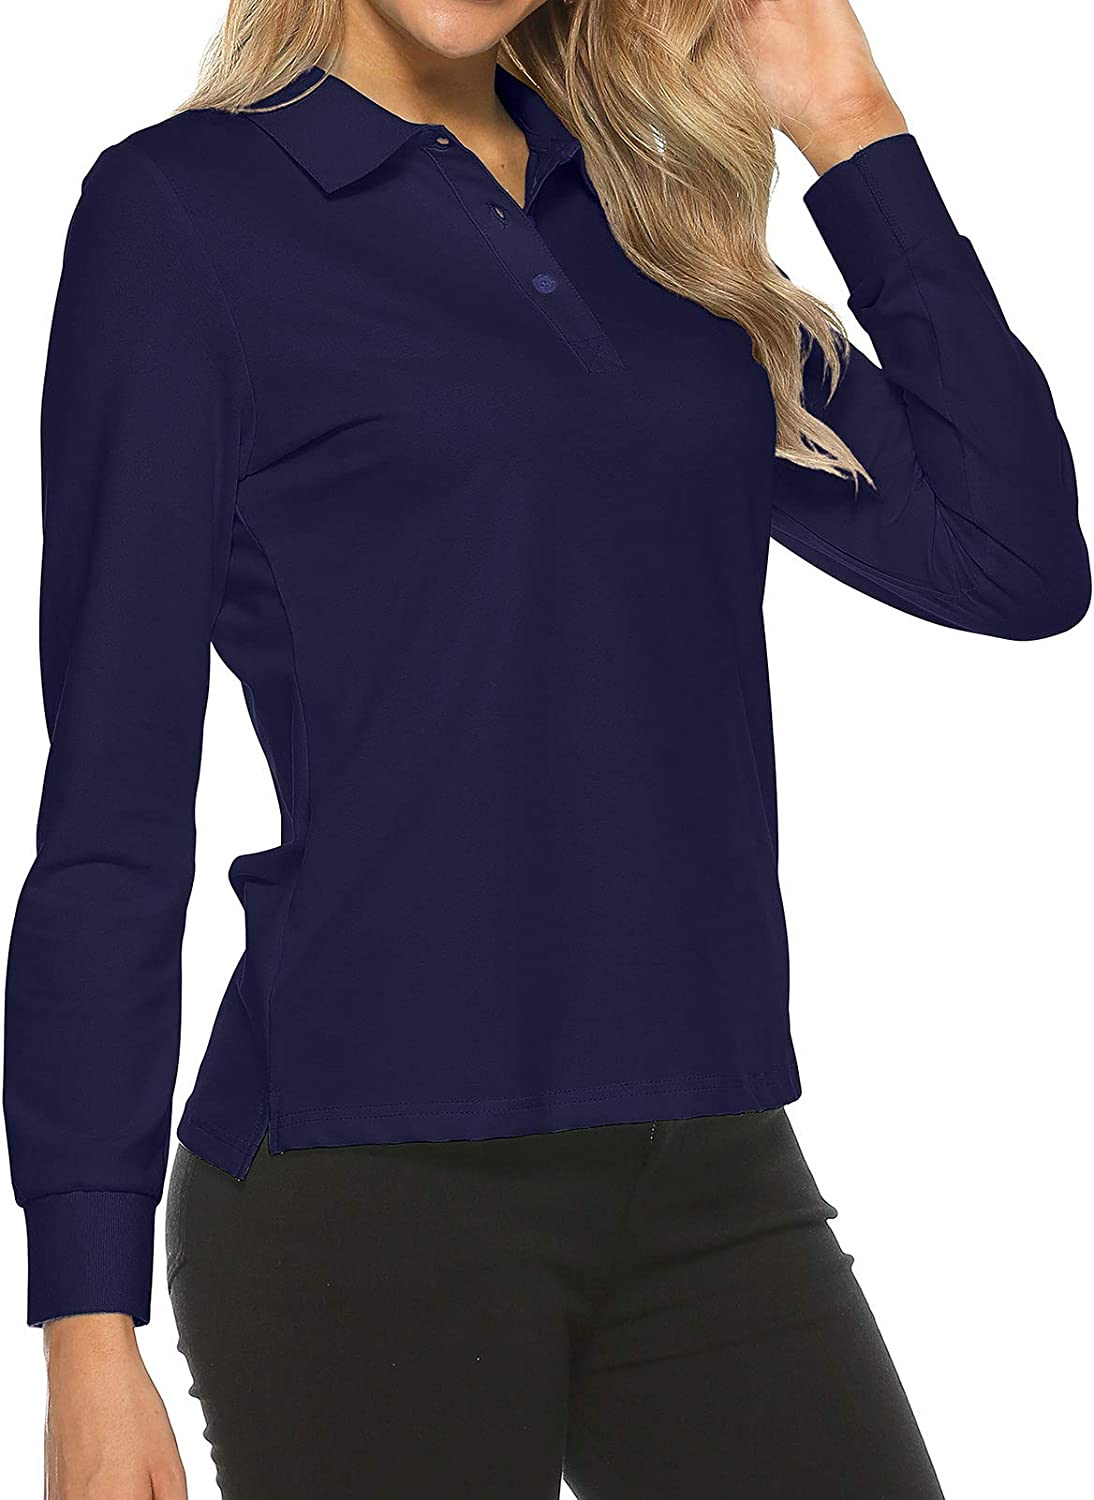 Women's Golf Polo Shirts Sports Athletic Fitn Tennis Credence Tops Arlington Mall